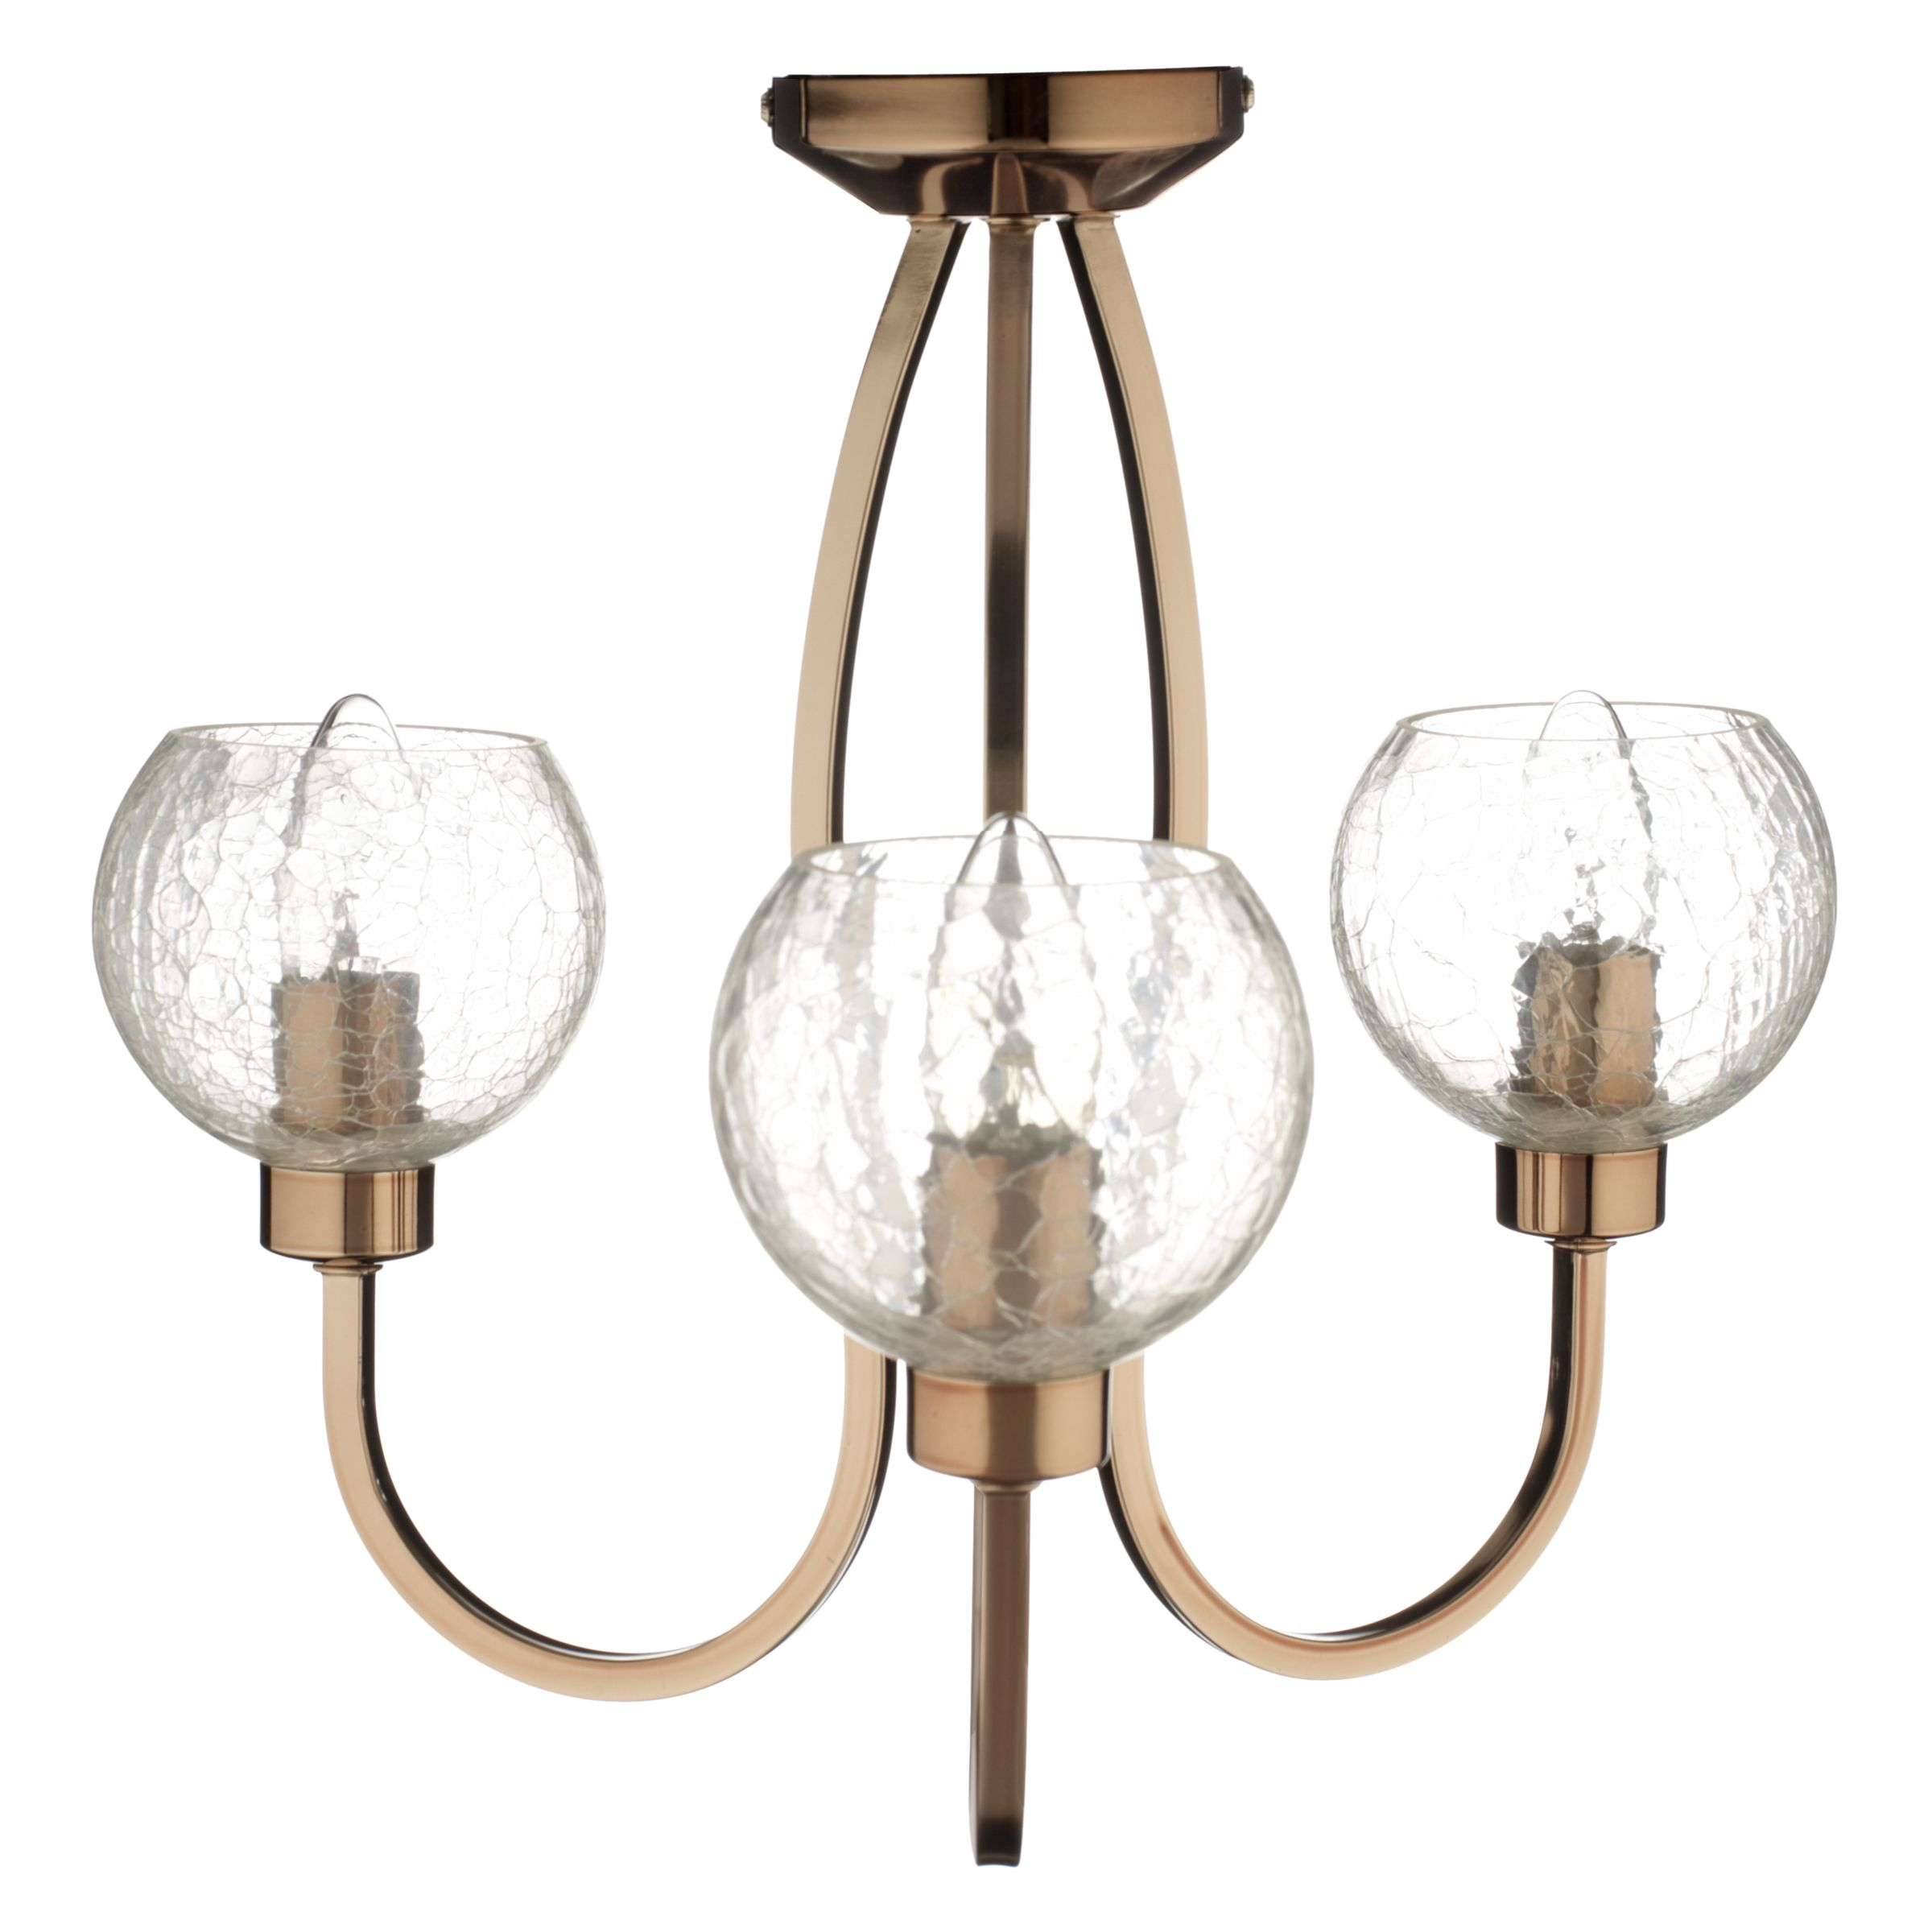 Ceiling Light Fittings At John Lewis : John lewis tirenzo ceiling light bronze arm review